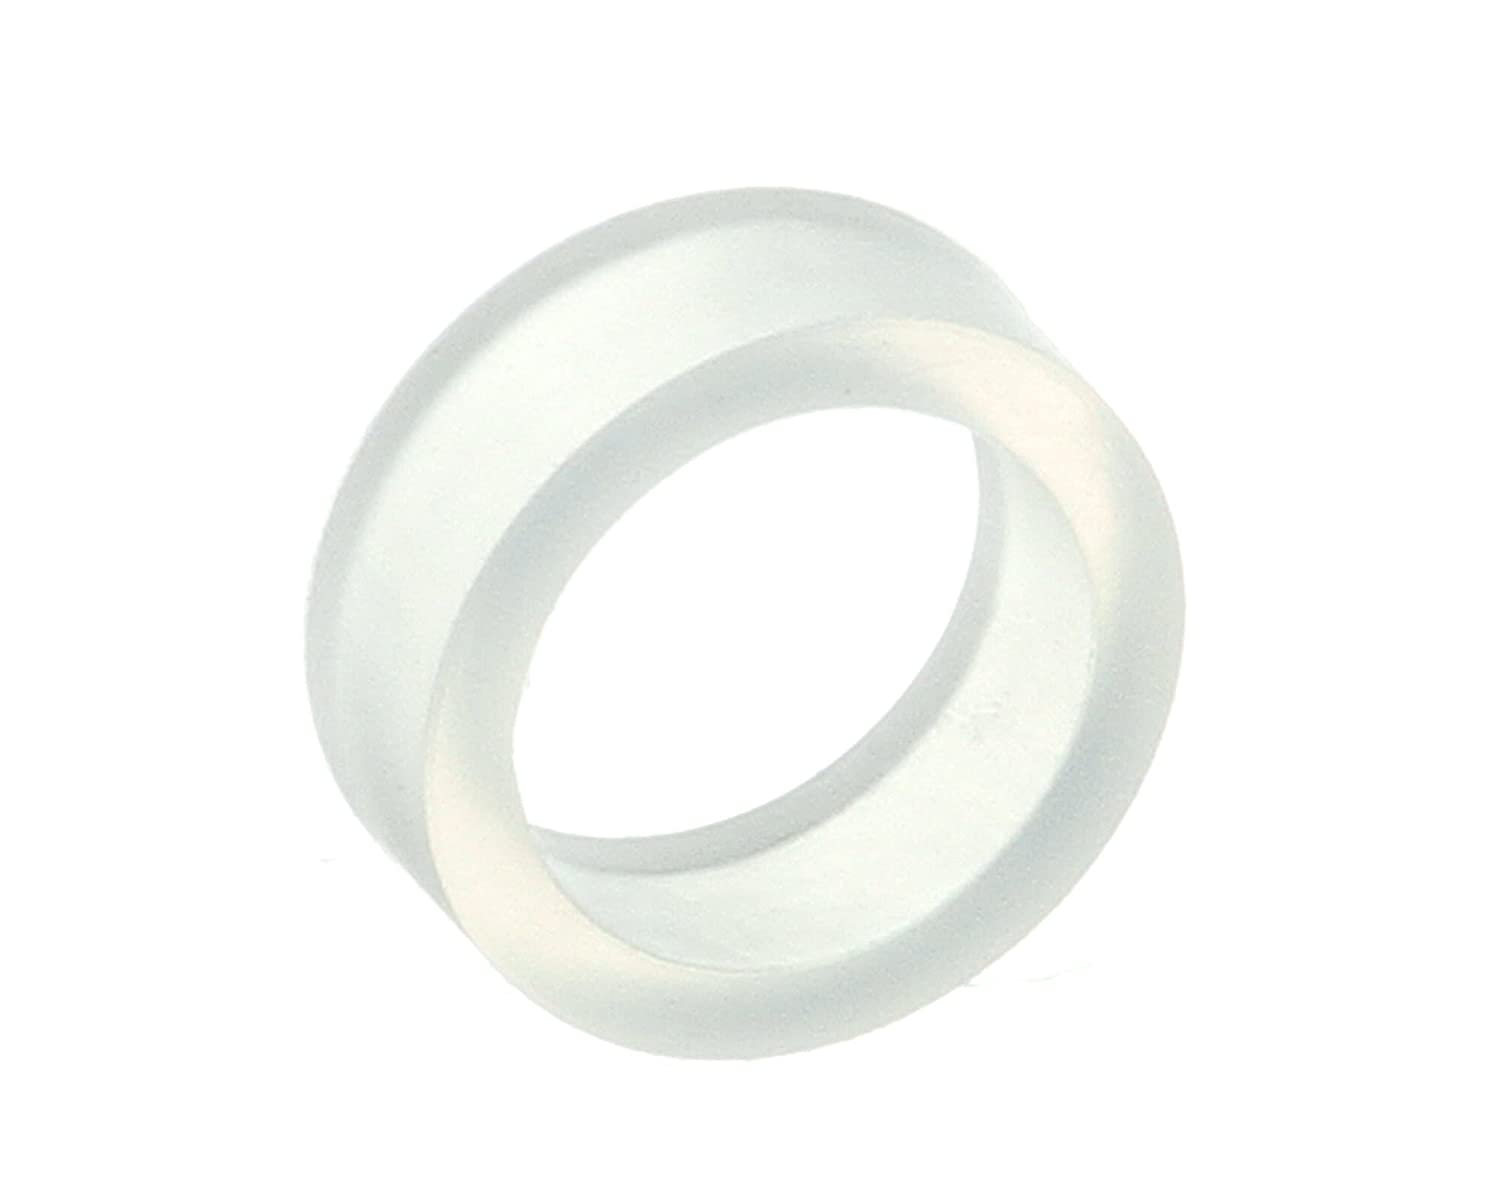 Thermostat-Silicone Bunn 04921.0000 Gasket